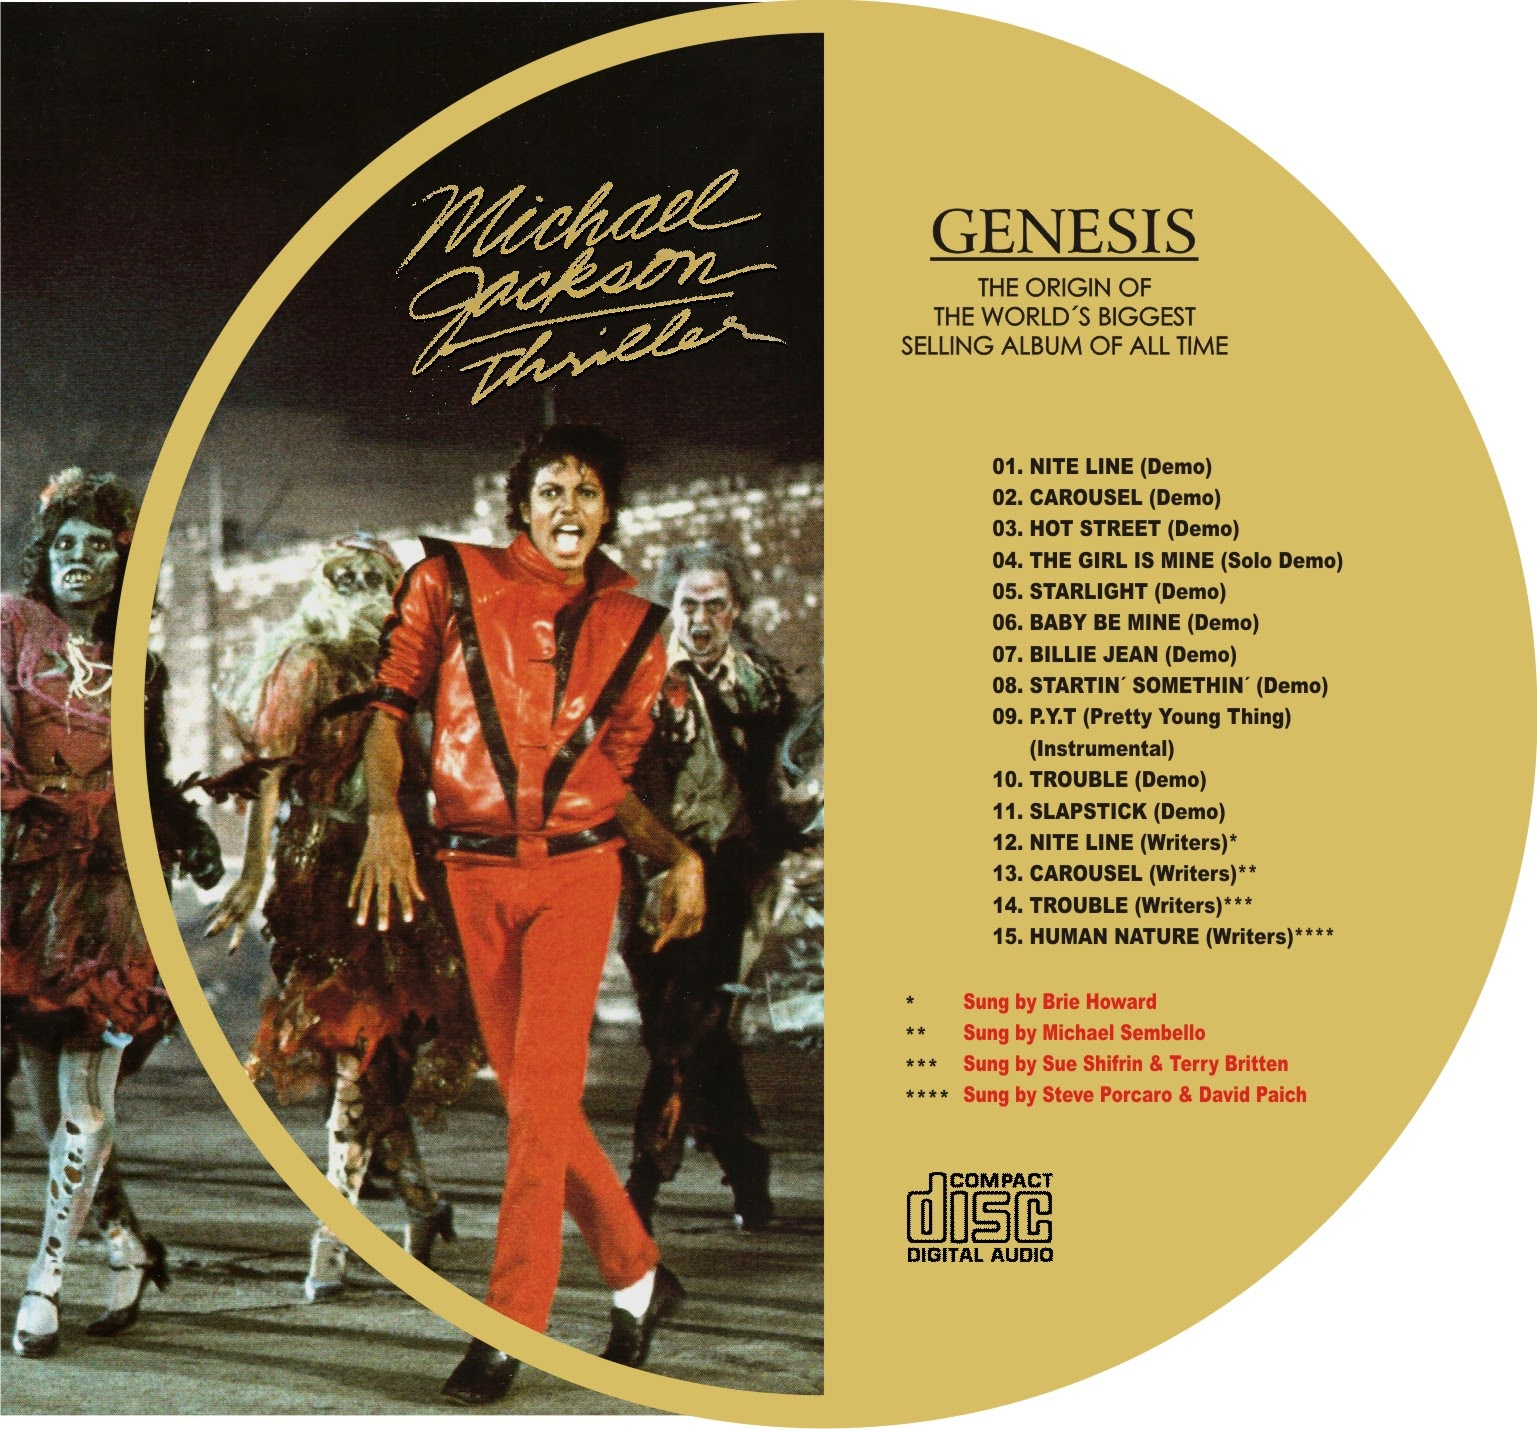 BENTLEYFUNK2015: Michael Jackson - ''Thriller Demos ...